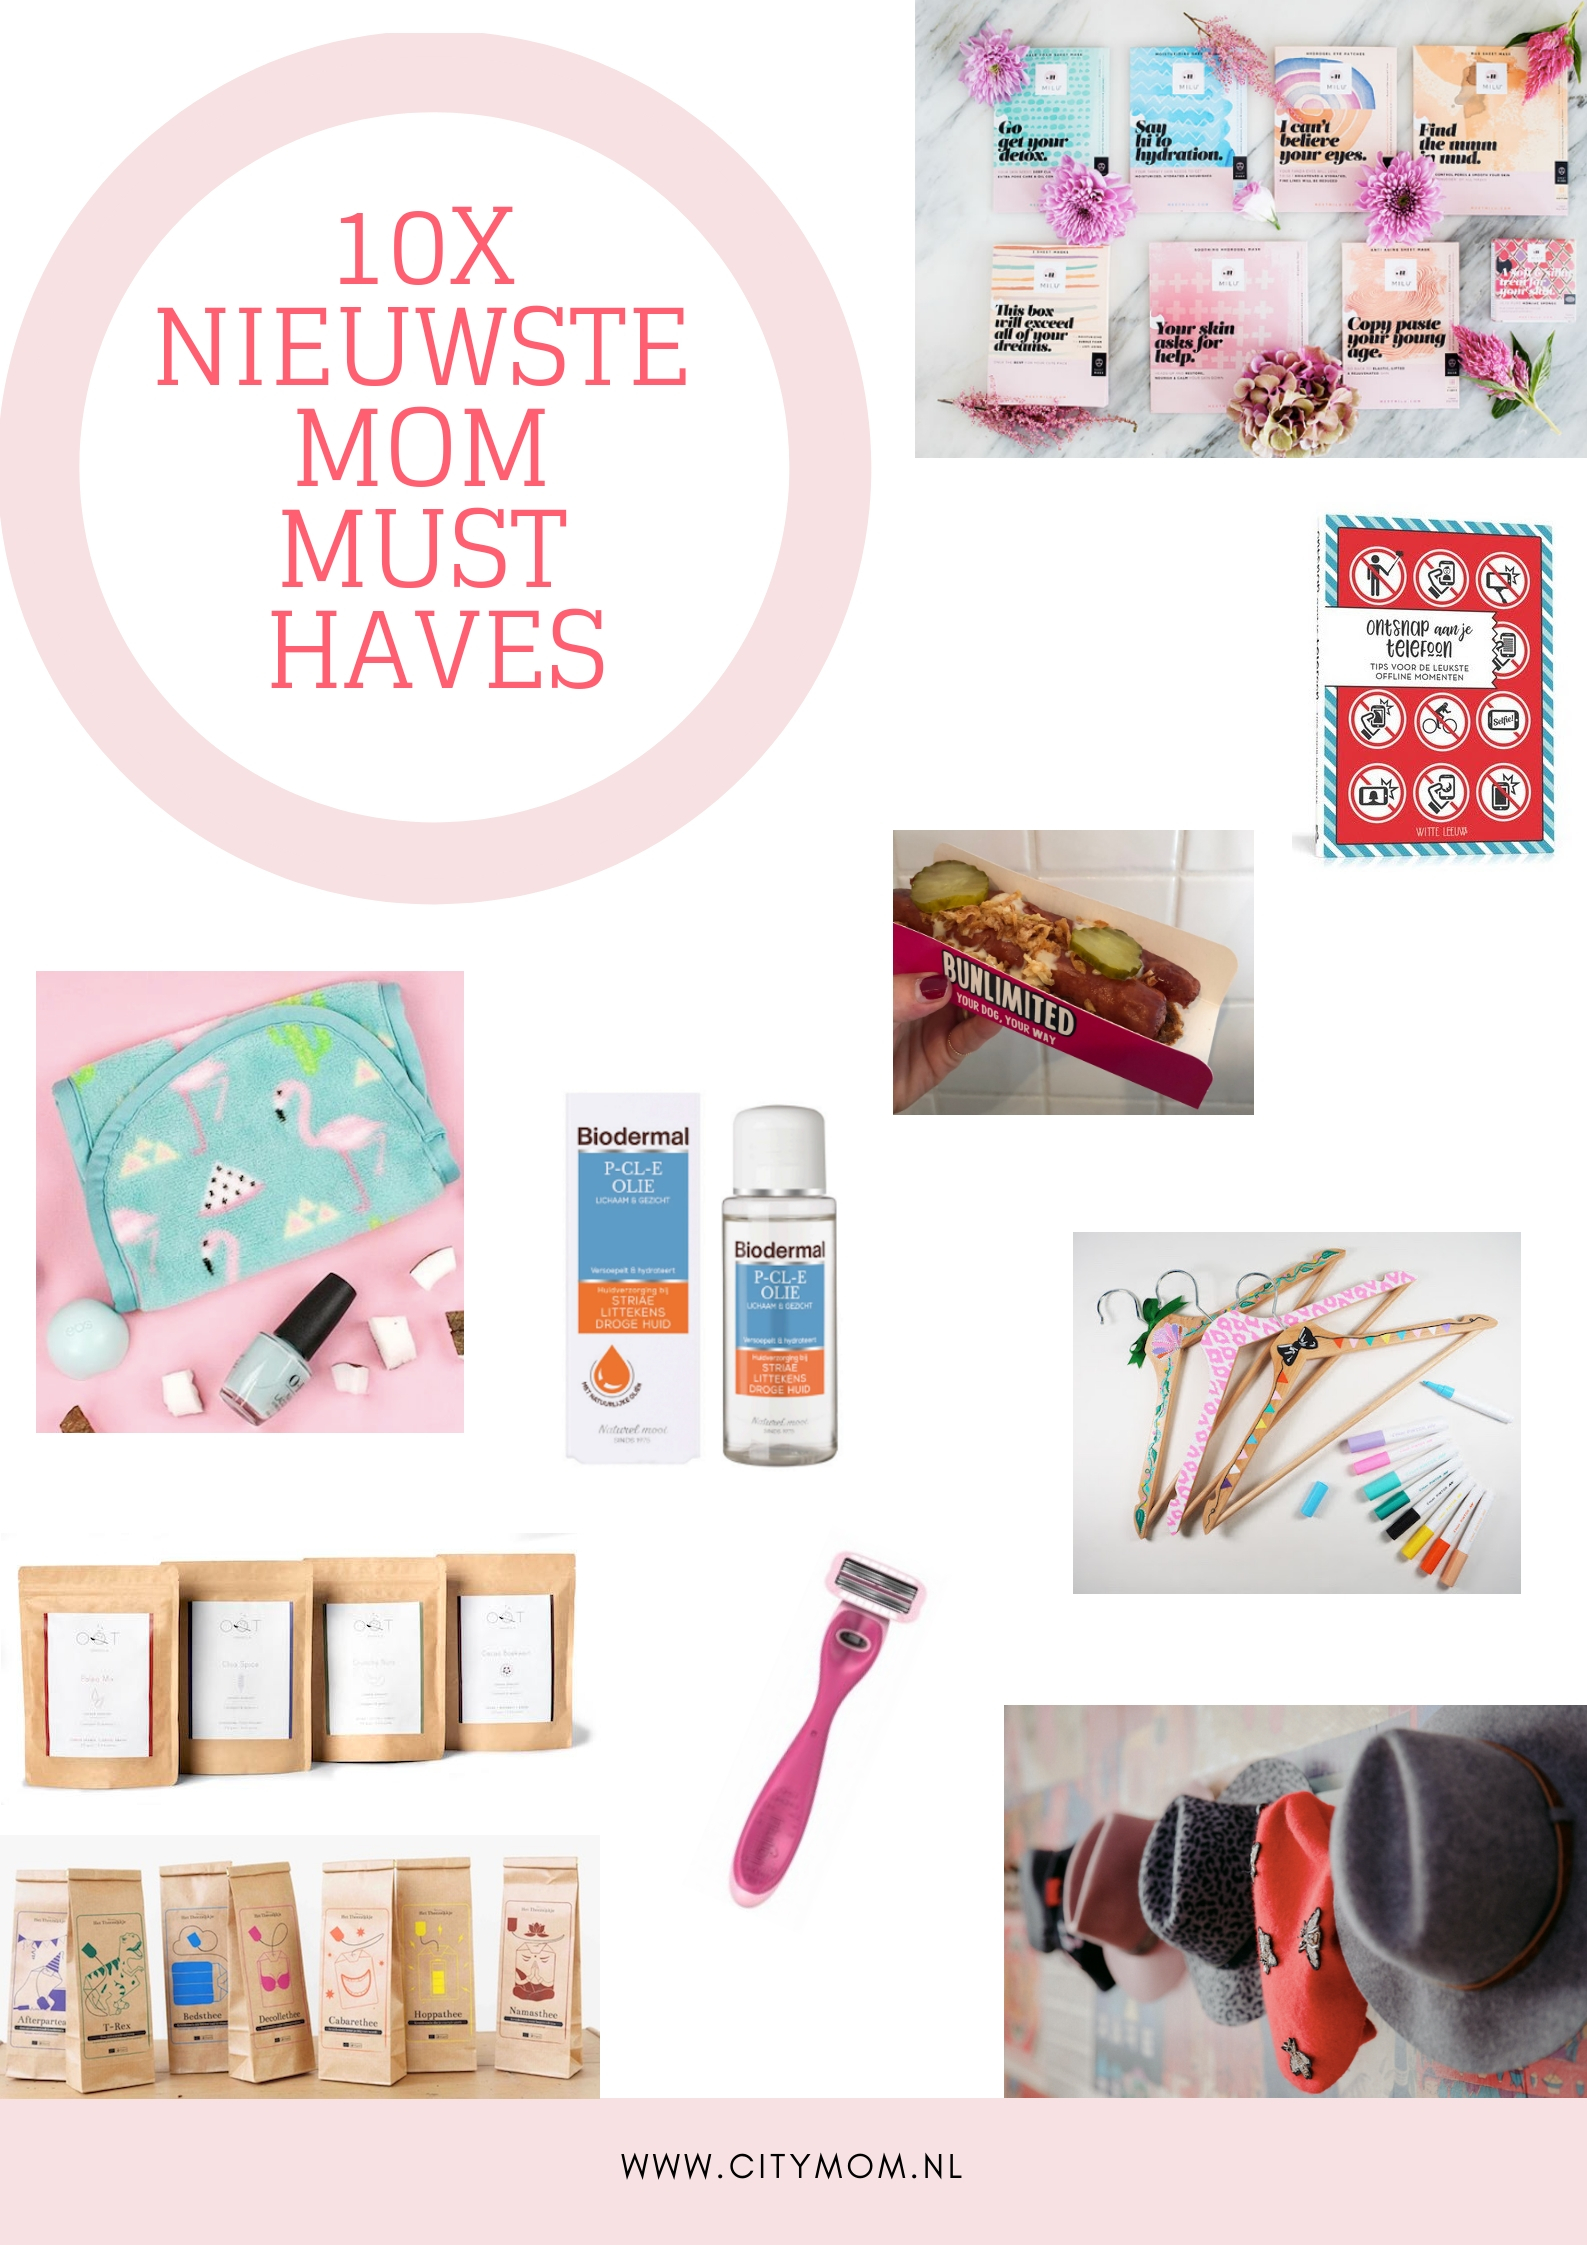 0X NIEUWSTE MOM MUSTHAVES.